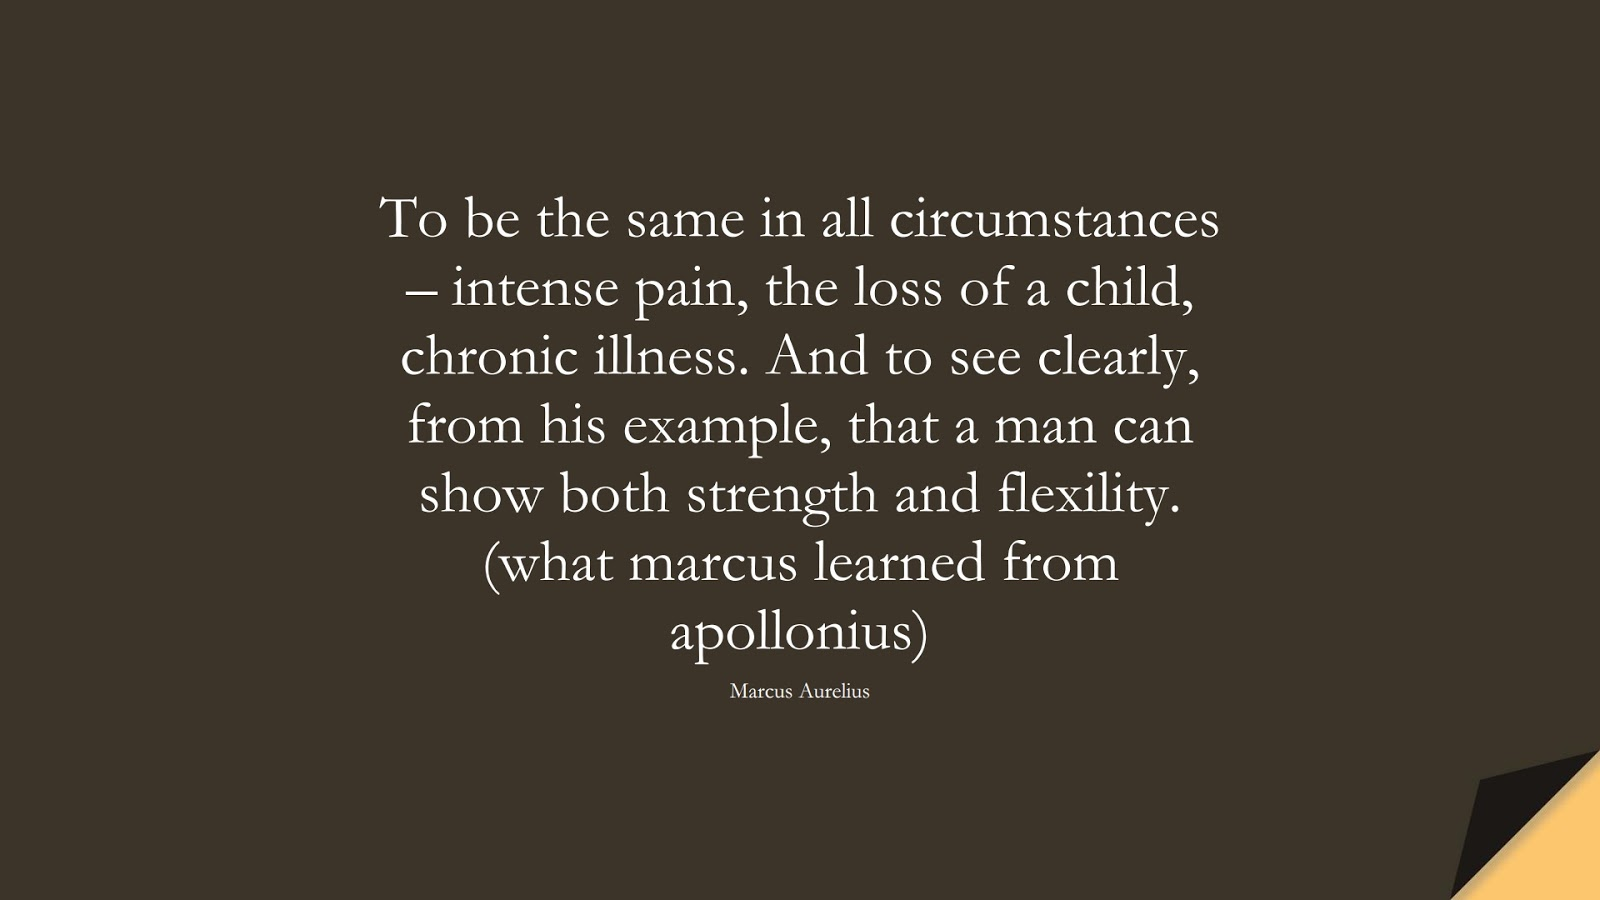 To be the same in all circumstances – intense pain, the loss of a child, chronic illness. And to see clearly, from his example, that a man can show both strength and flexility. (what marcus learned from apollonius) (Marcus Aurelius);  #MarcusAureliusQuotes